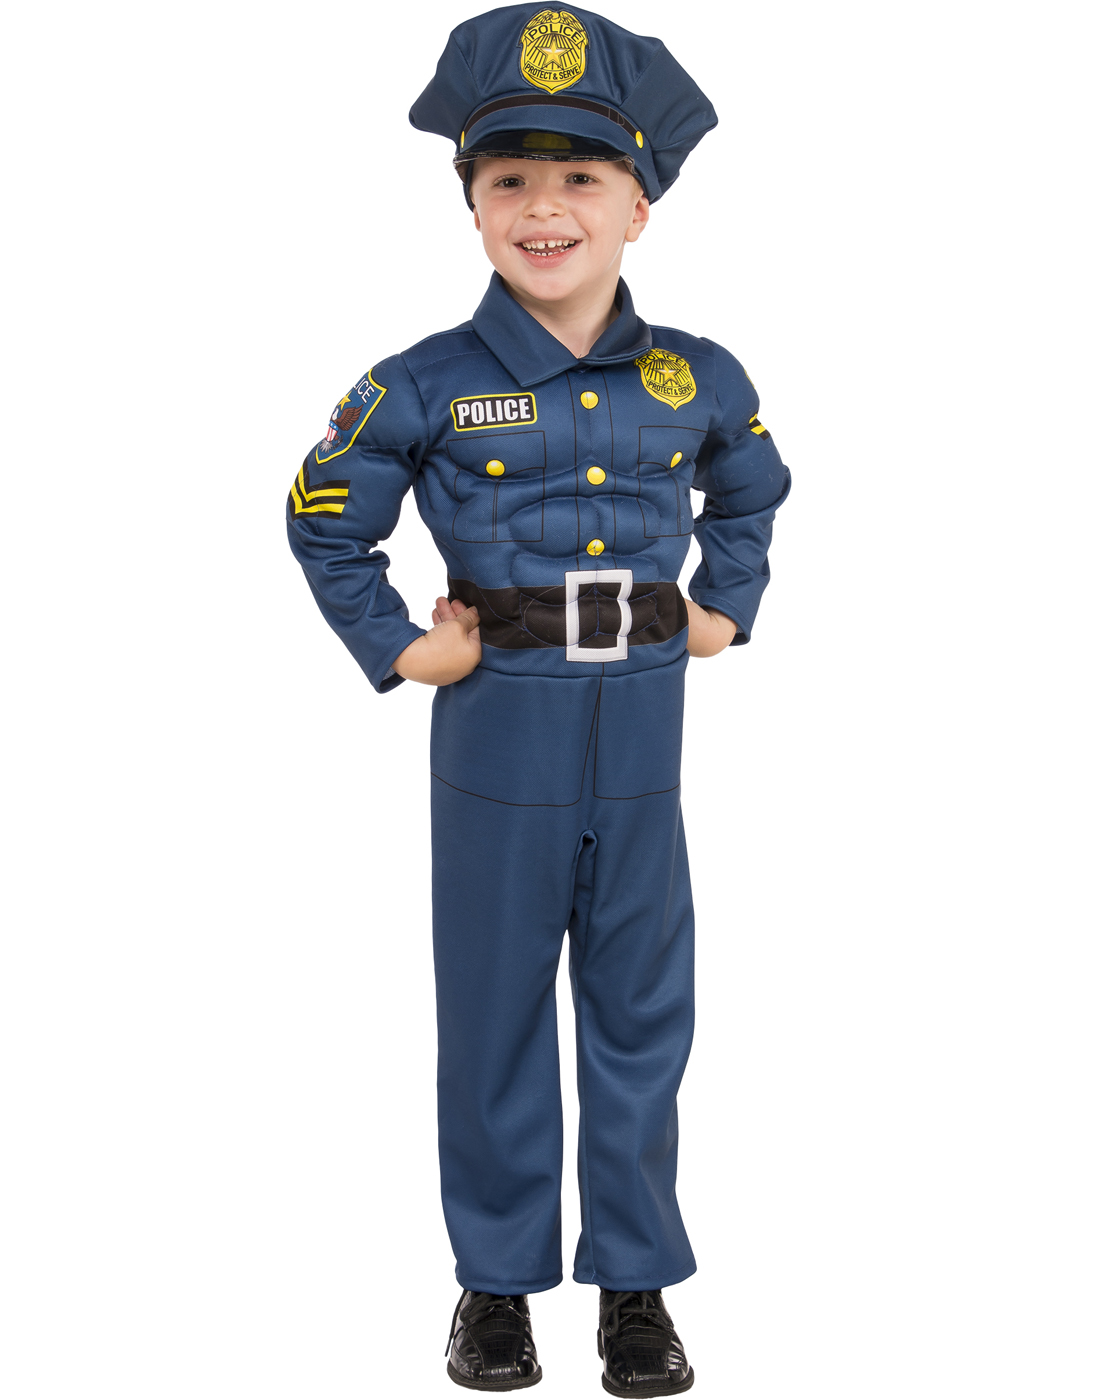 Top Cop Boys Police Costume  sc 1 st  eBay & Top Cop Boy Child Muscle Chest Police Blue Uniform Halloween Costume ...